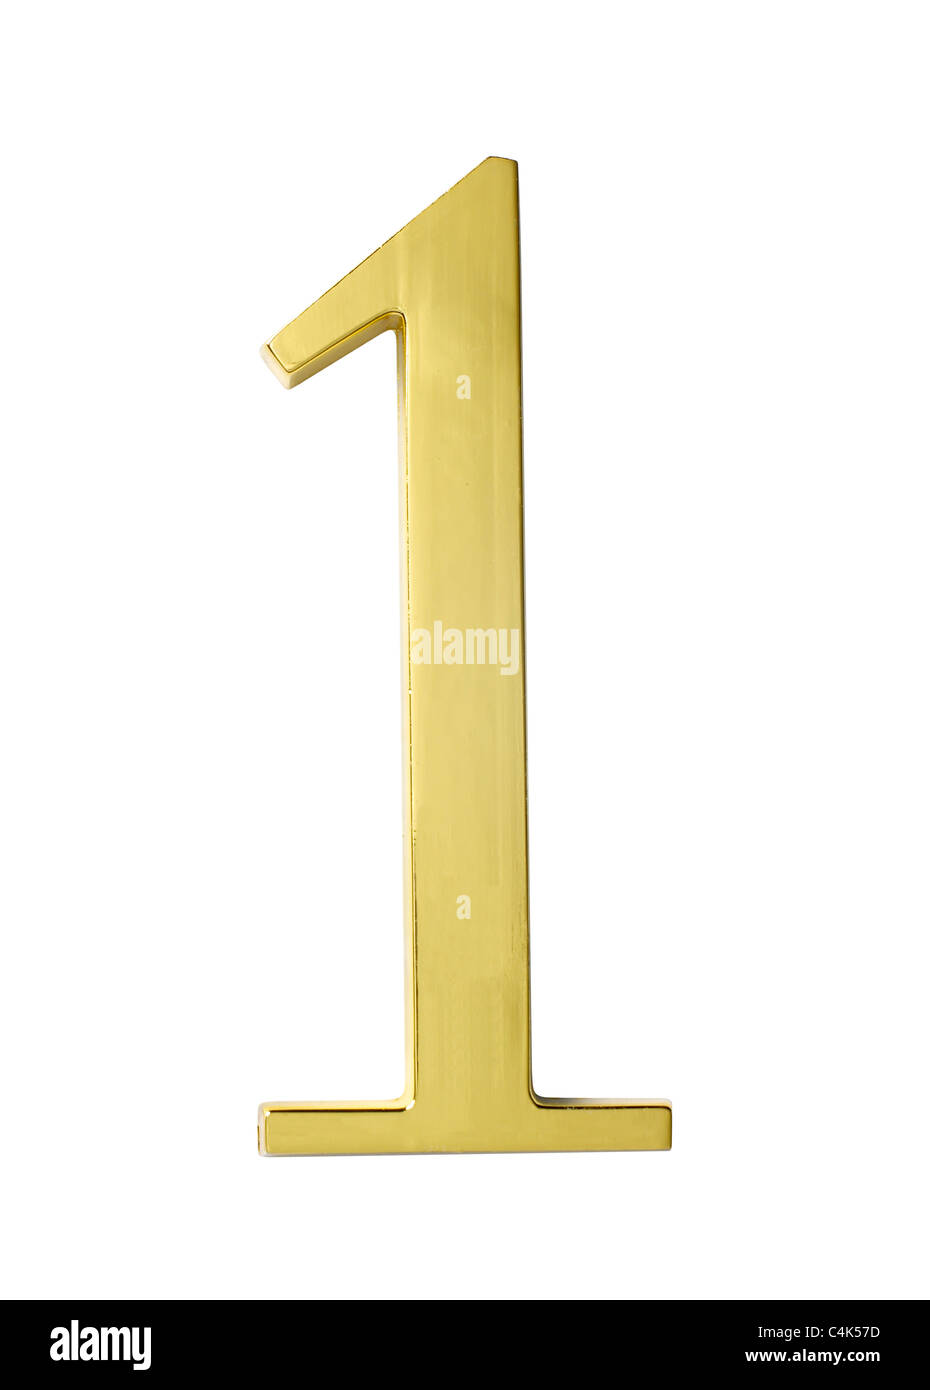 gold metal number one 1 - Stock Image